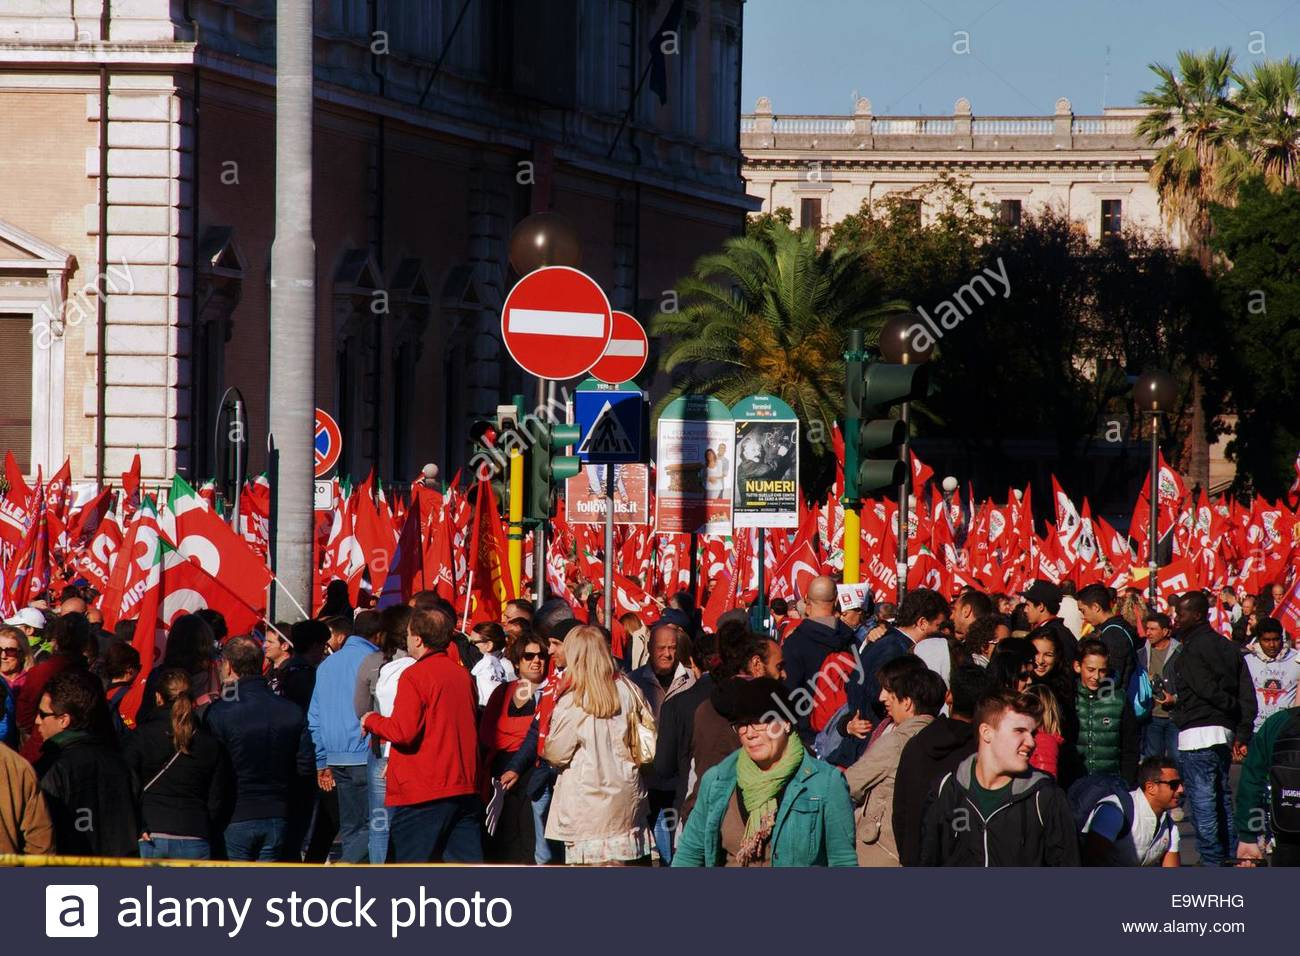 Protesters march against Renzi labor reforms - Stock Image